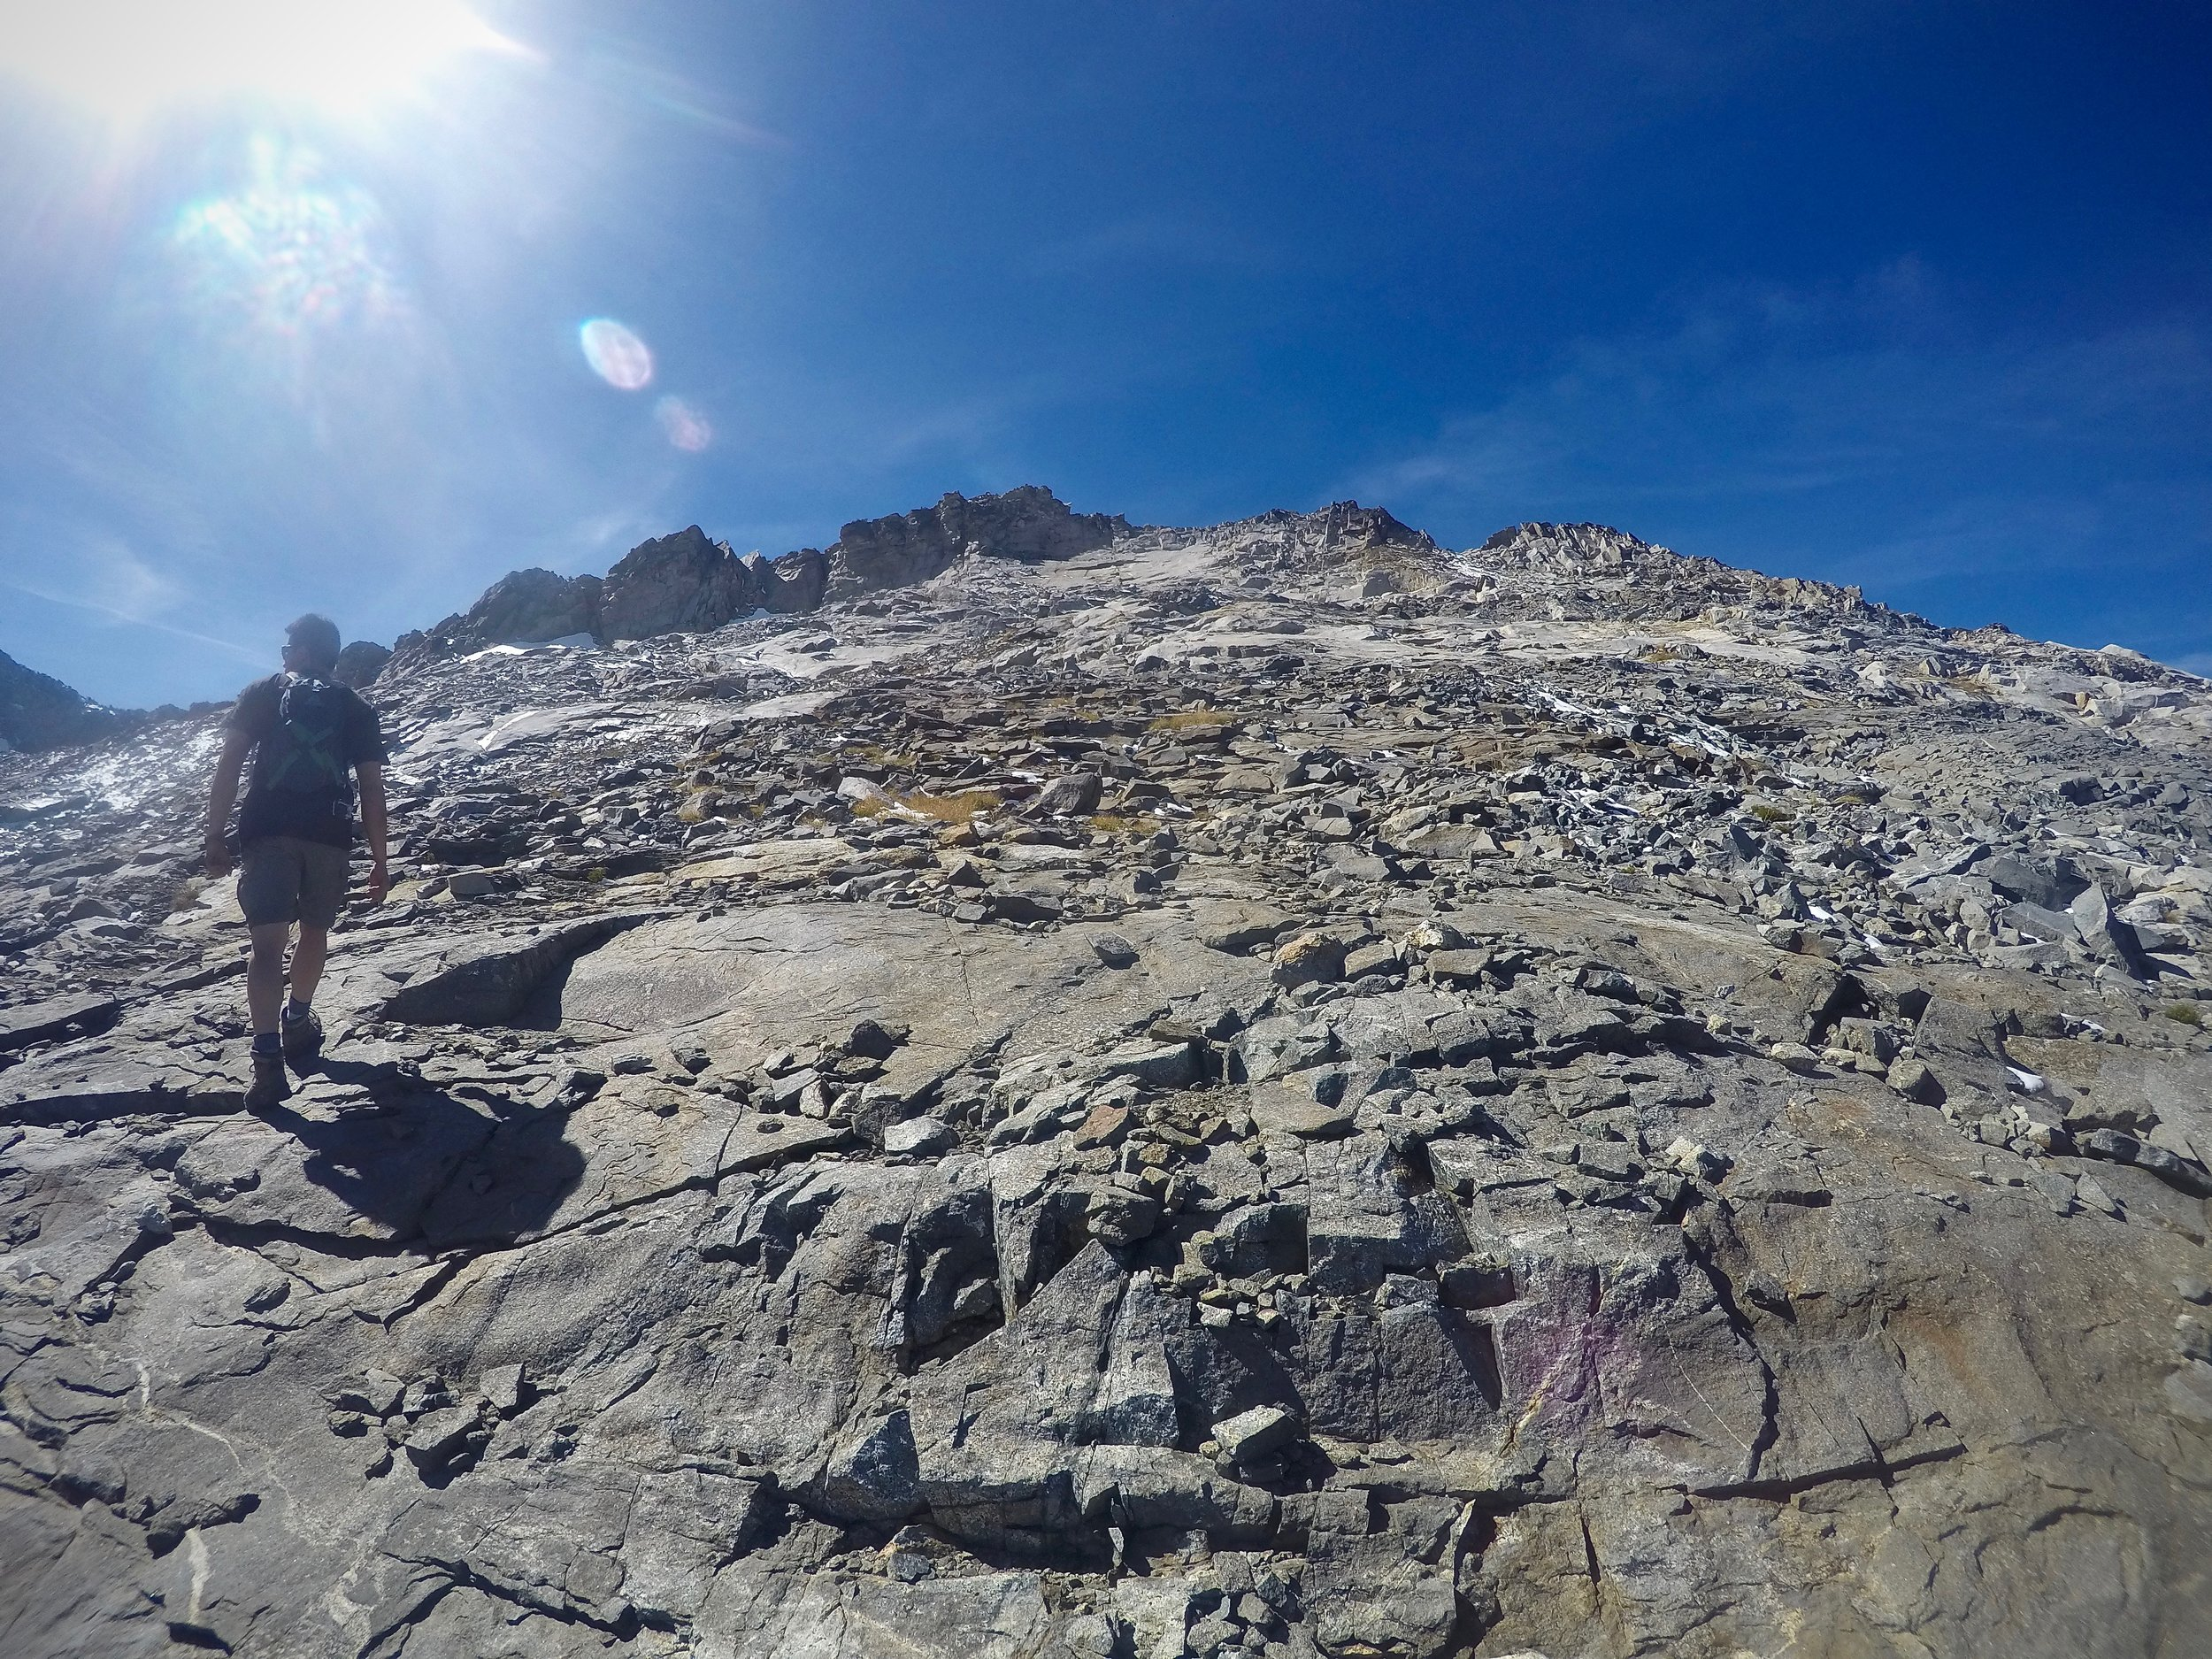 Crumbly, rocky terrain on the final ascent